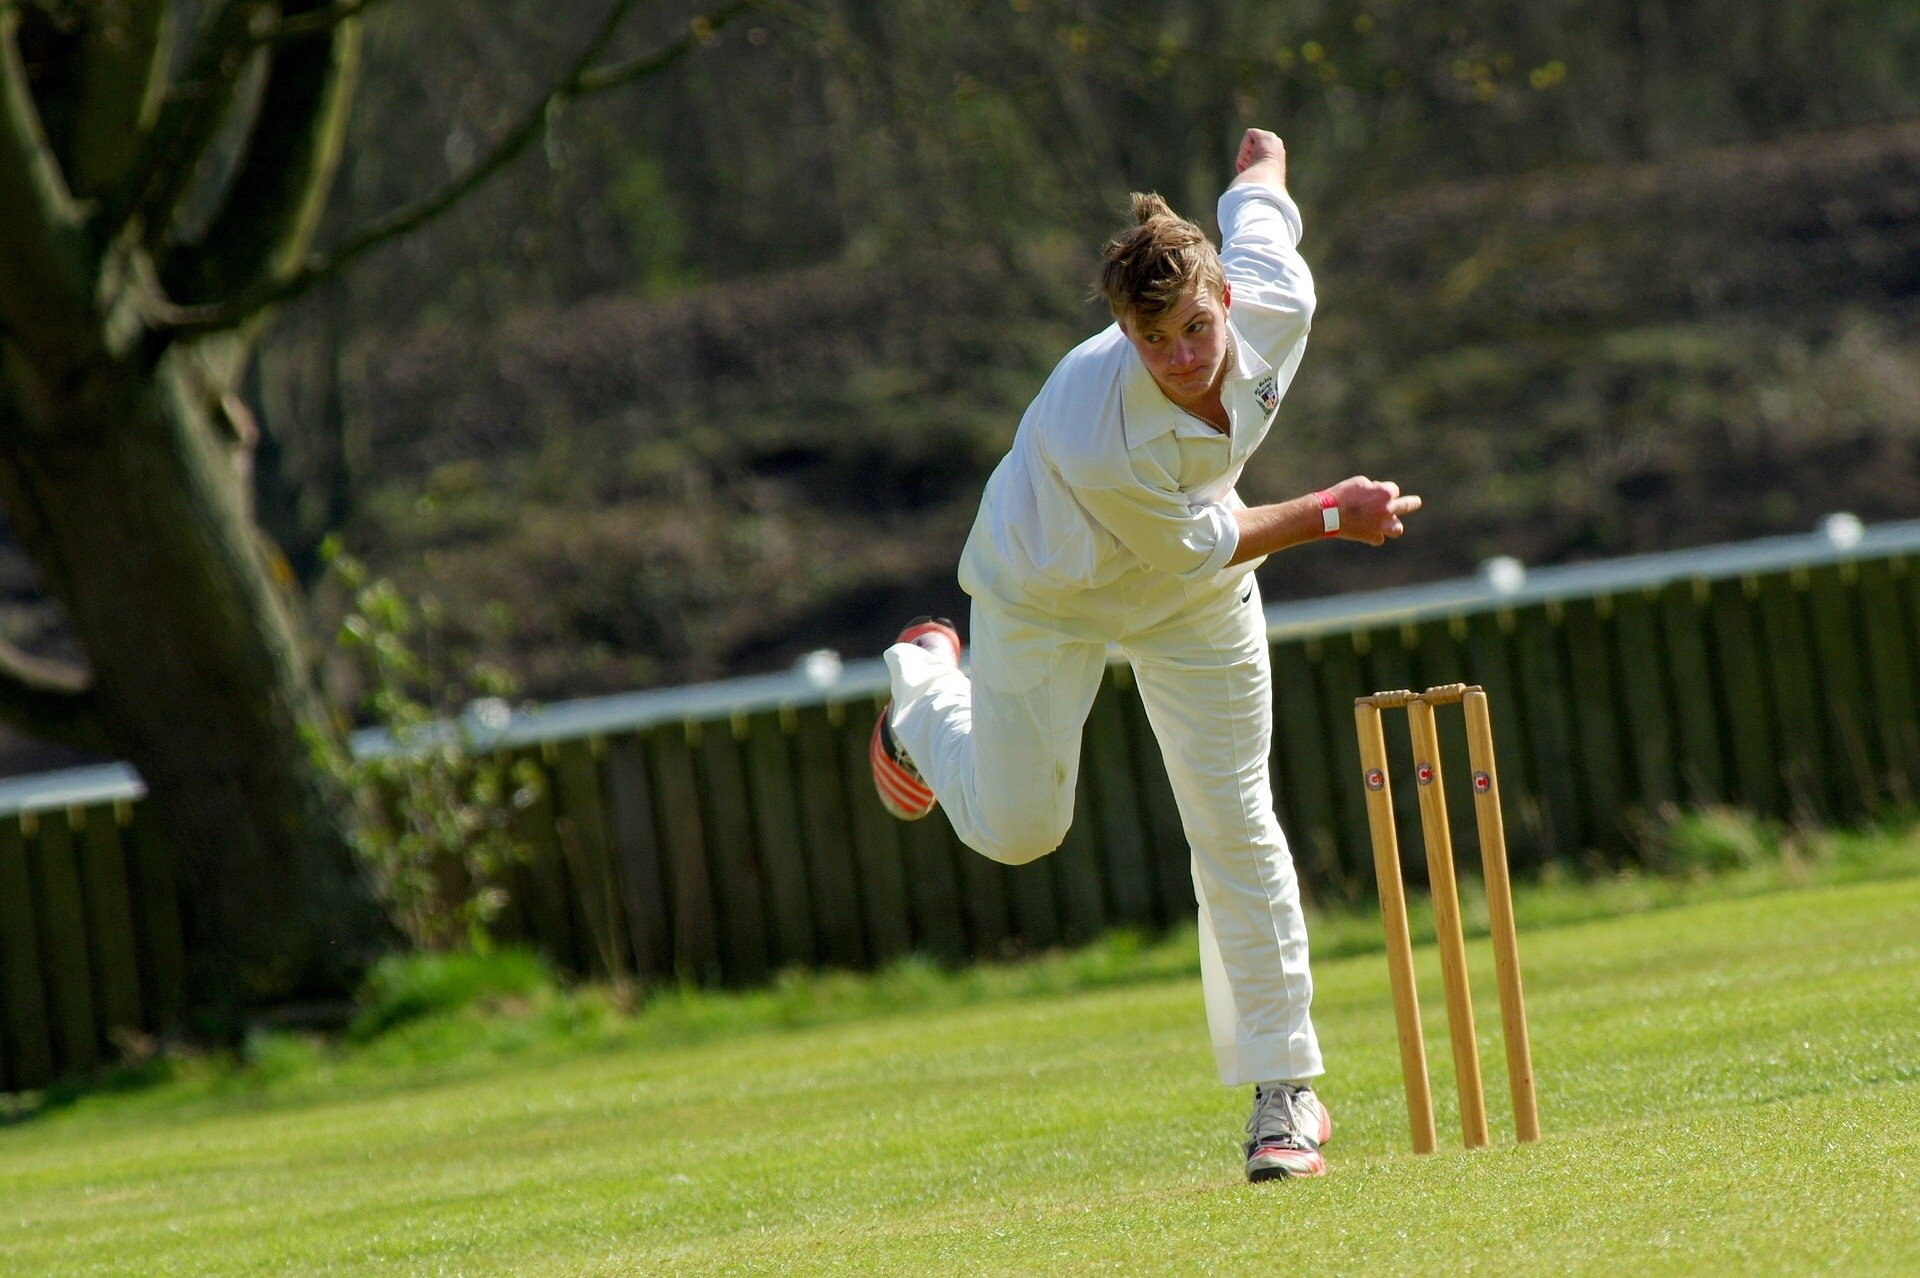 Home Office cracking down on entry of amateur cricketers